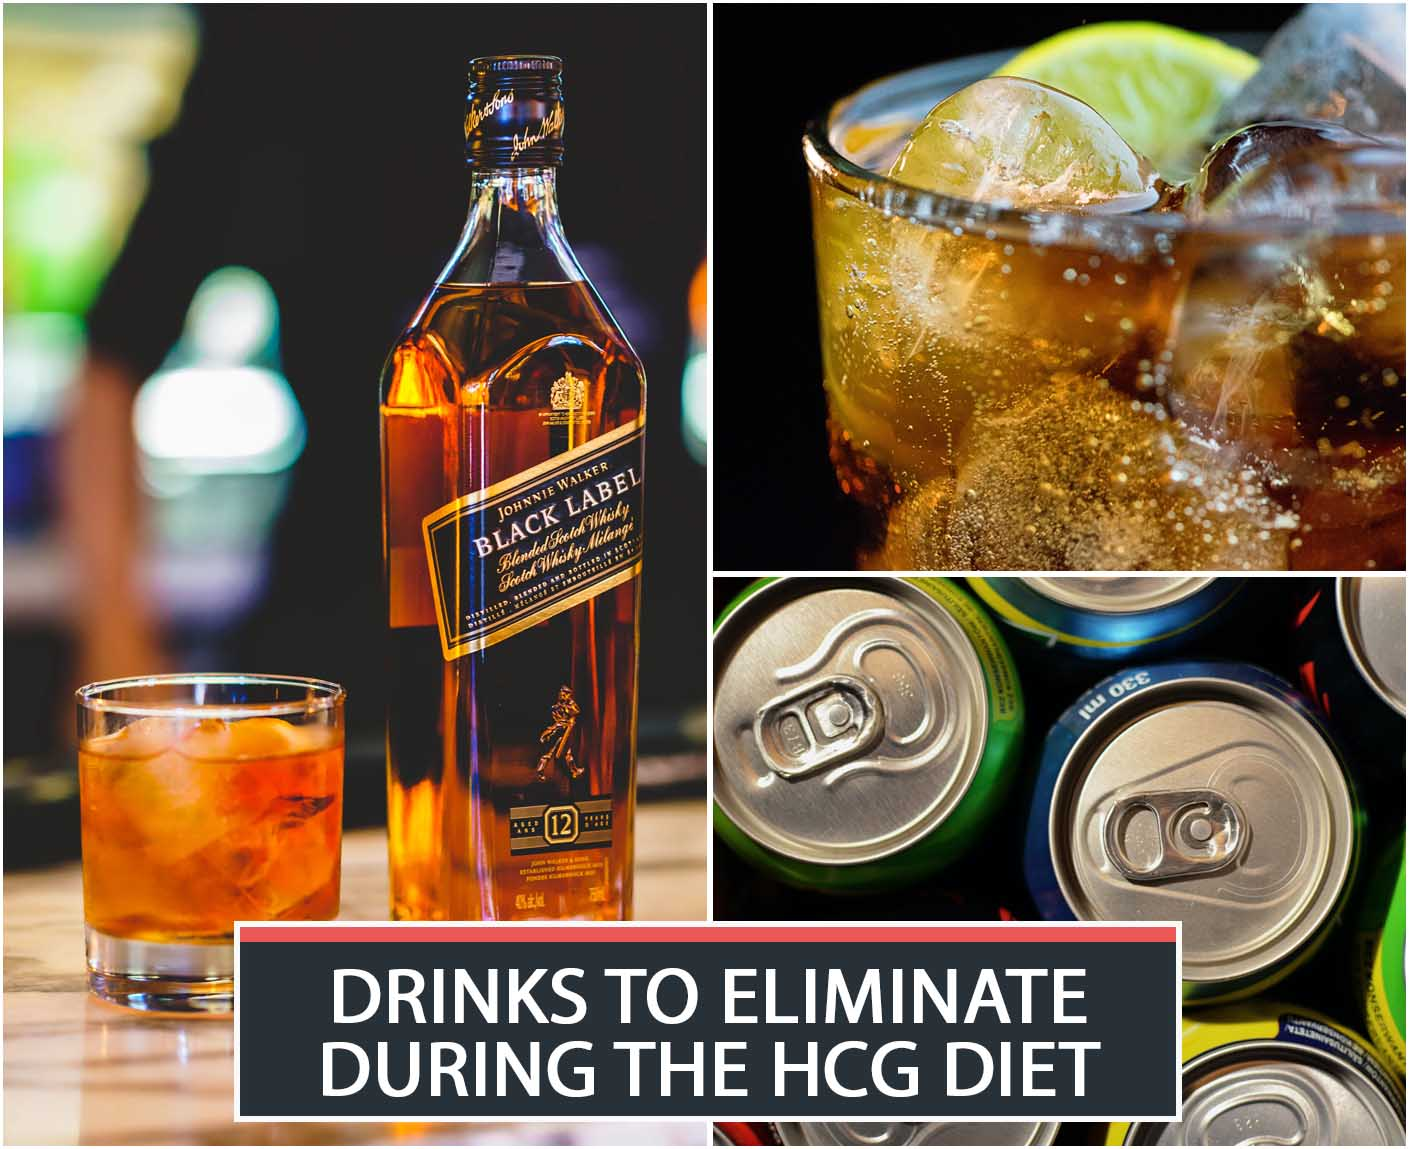 DRINKS TO ELIMINATE DURING THE HCG DIET